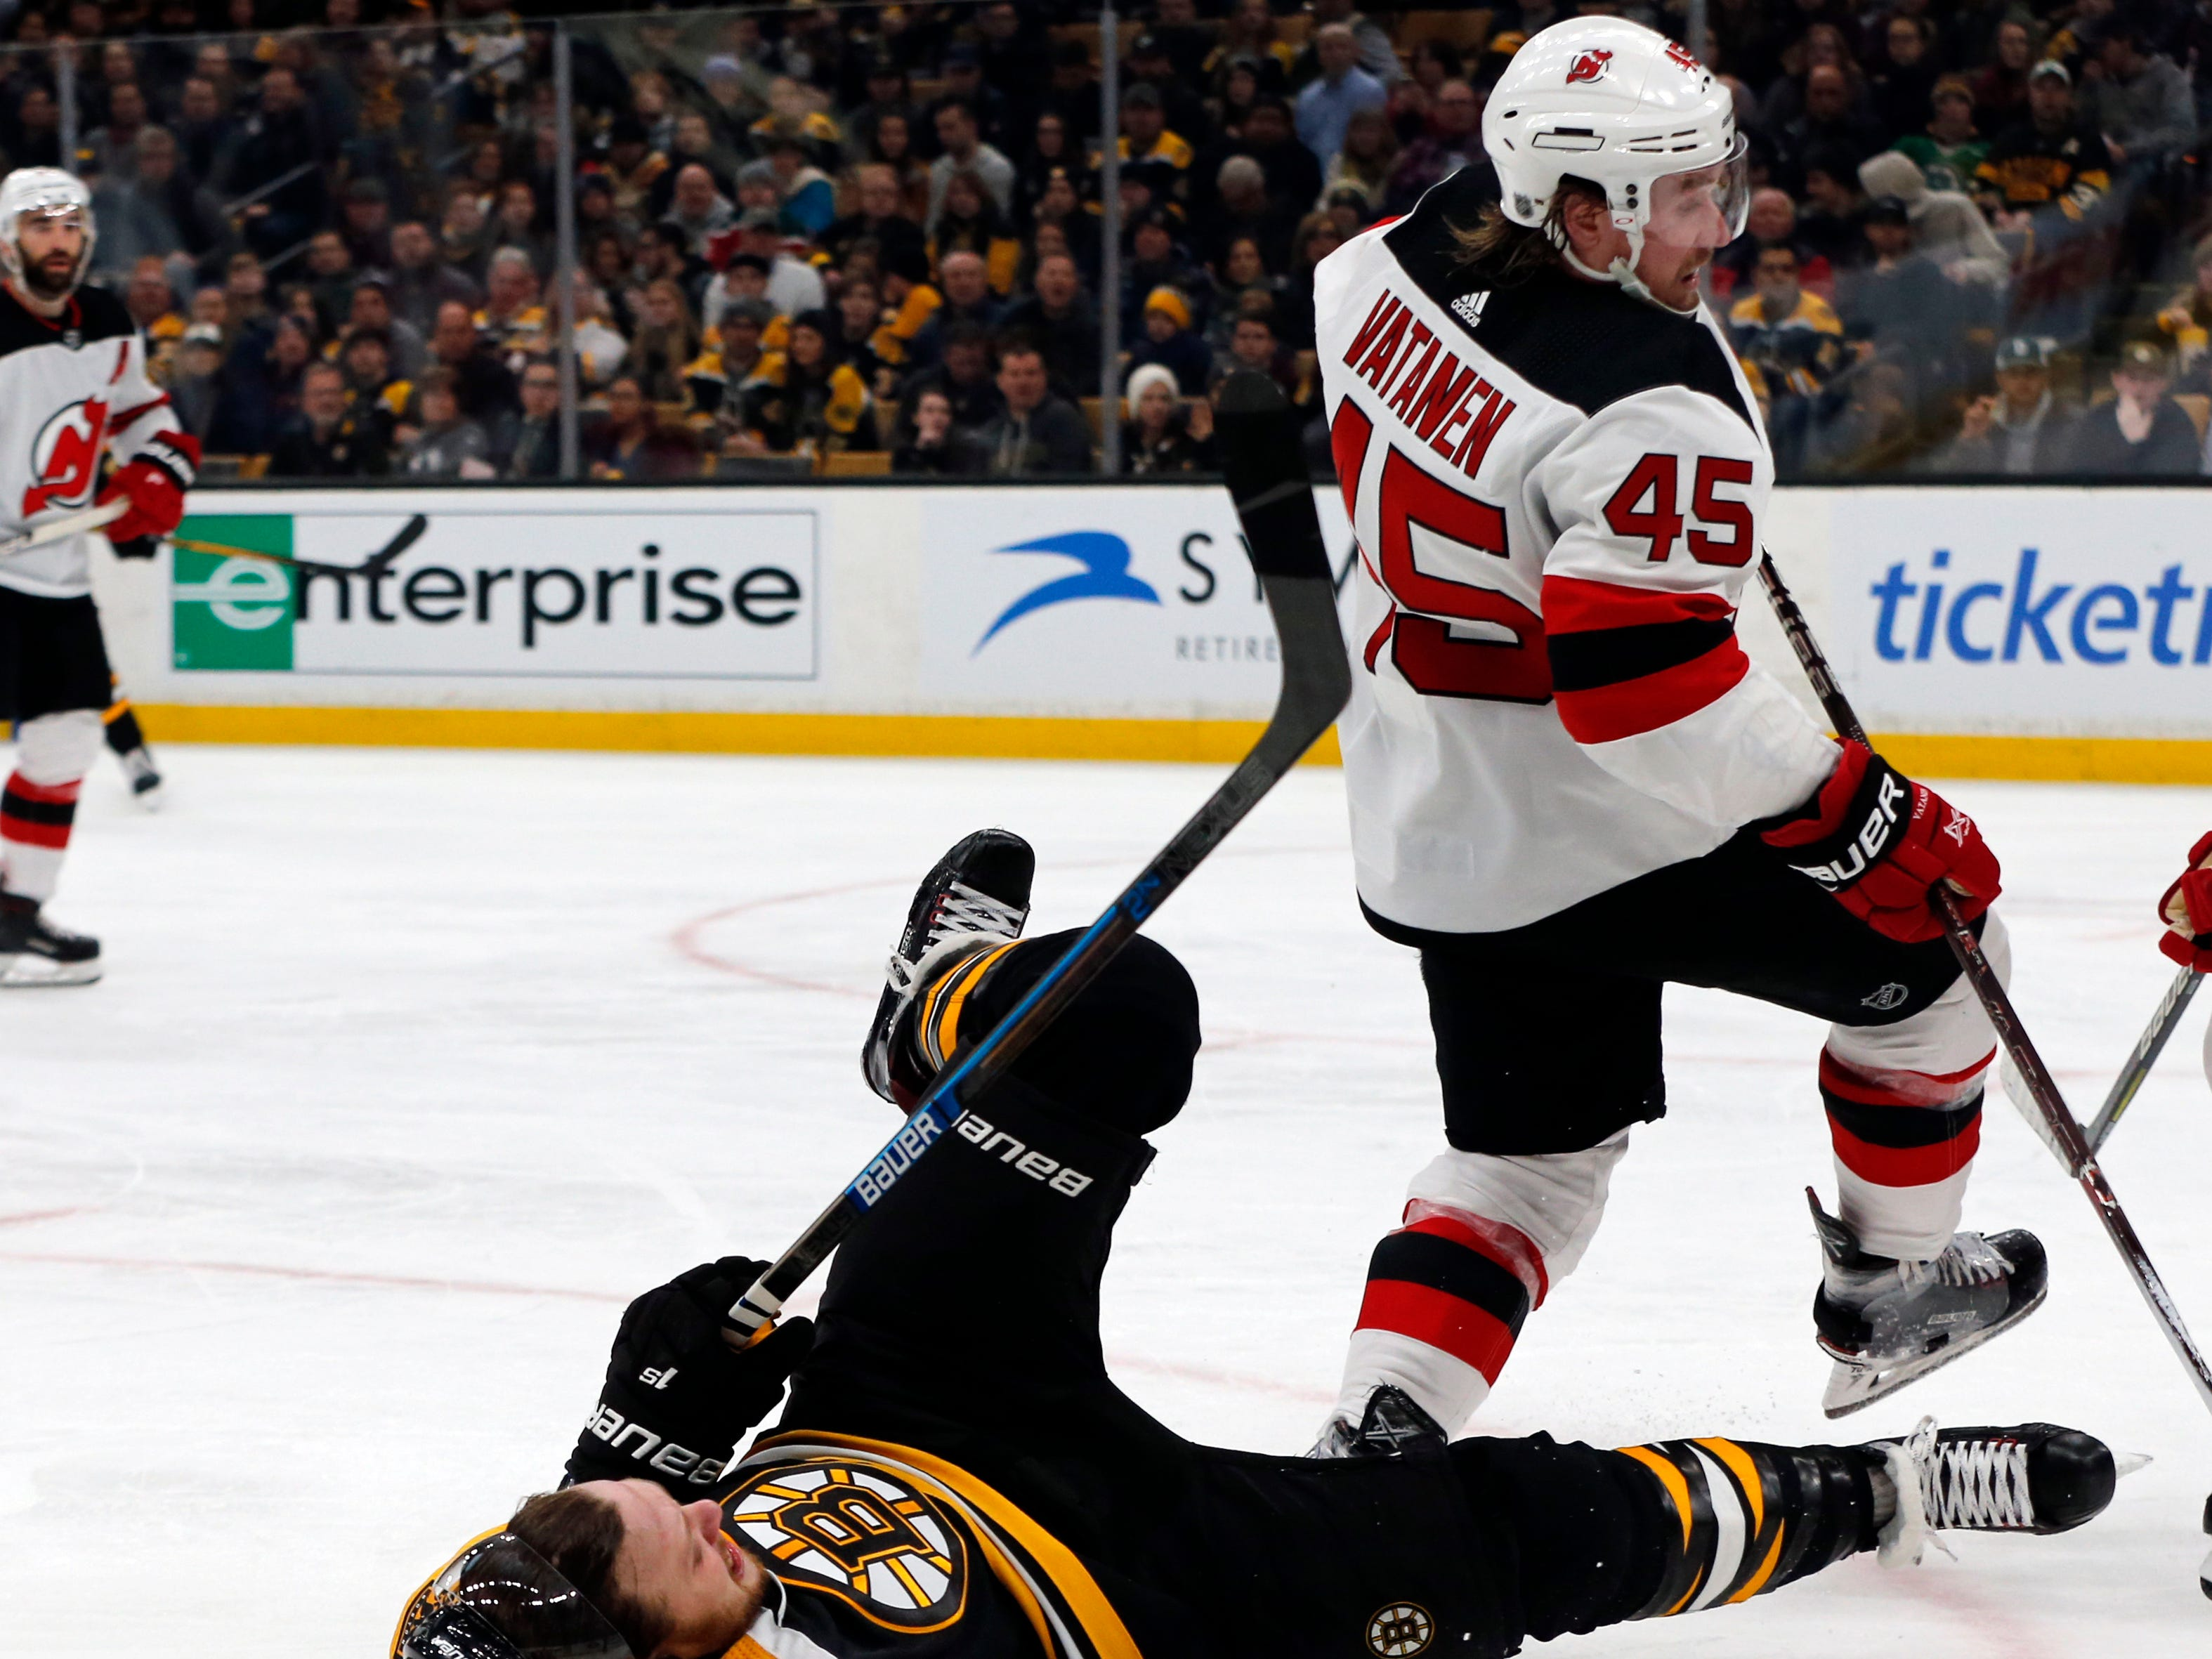 Boston Bruins right wing David Pastrnak (88) is knocked to the ice as he competes with New Jersey Devils defenseman Sami Vatanen (45) for the puck the second period of an NHL hockey game Thursday, Dec. 27, 2018, in Boston